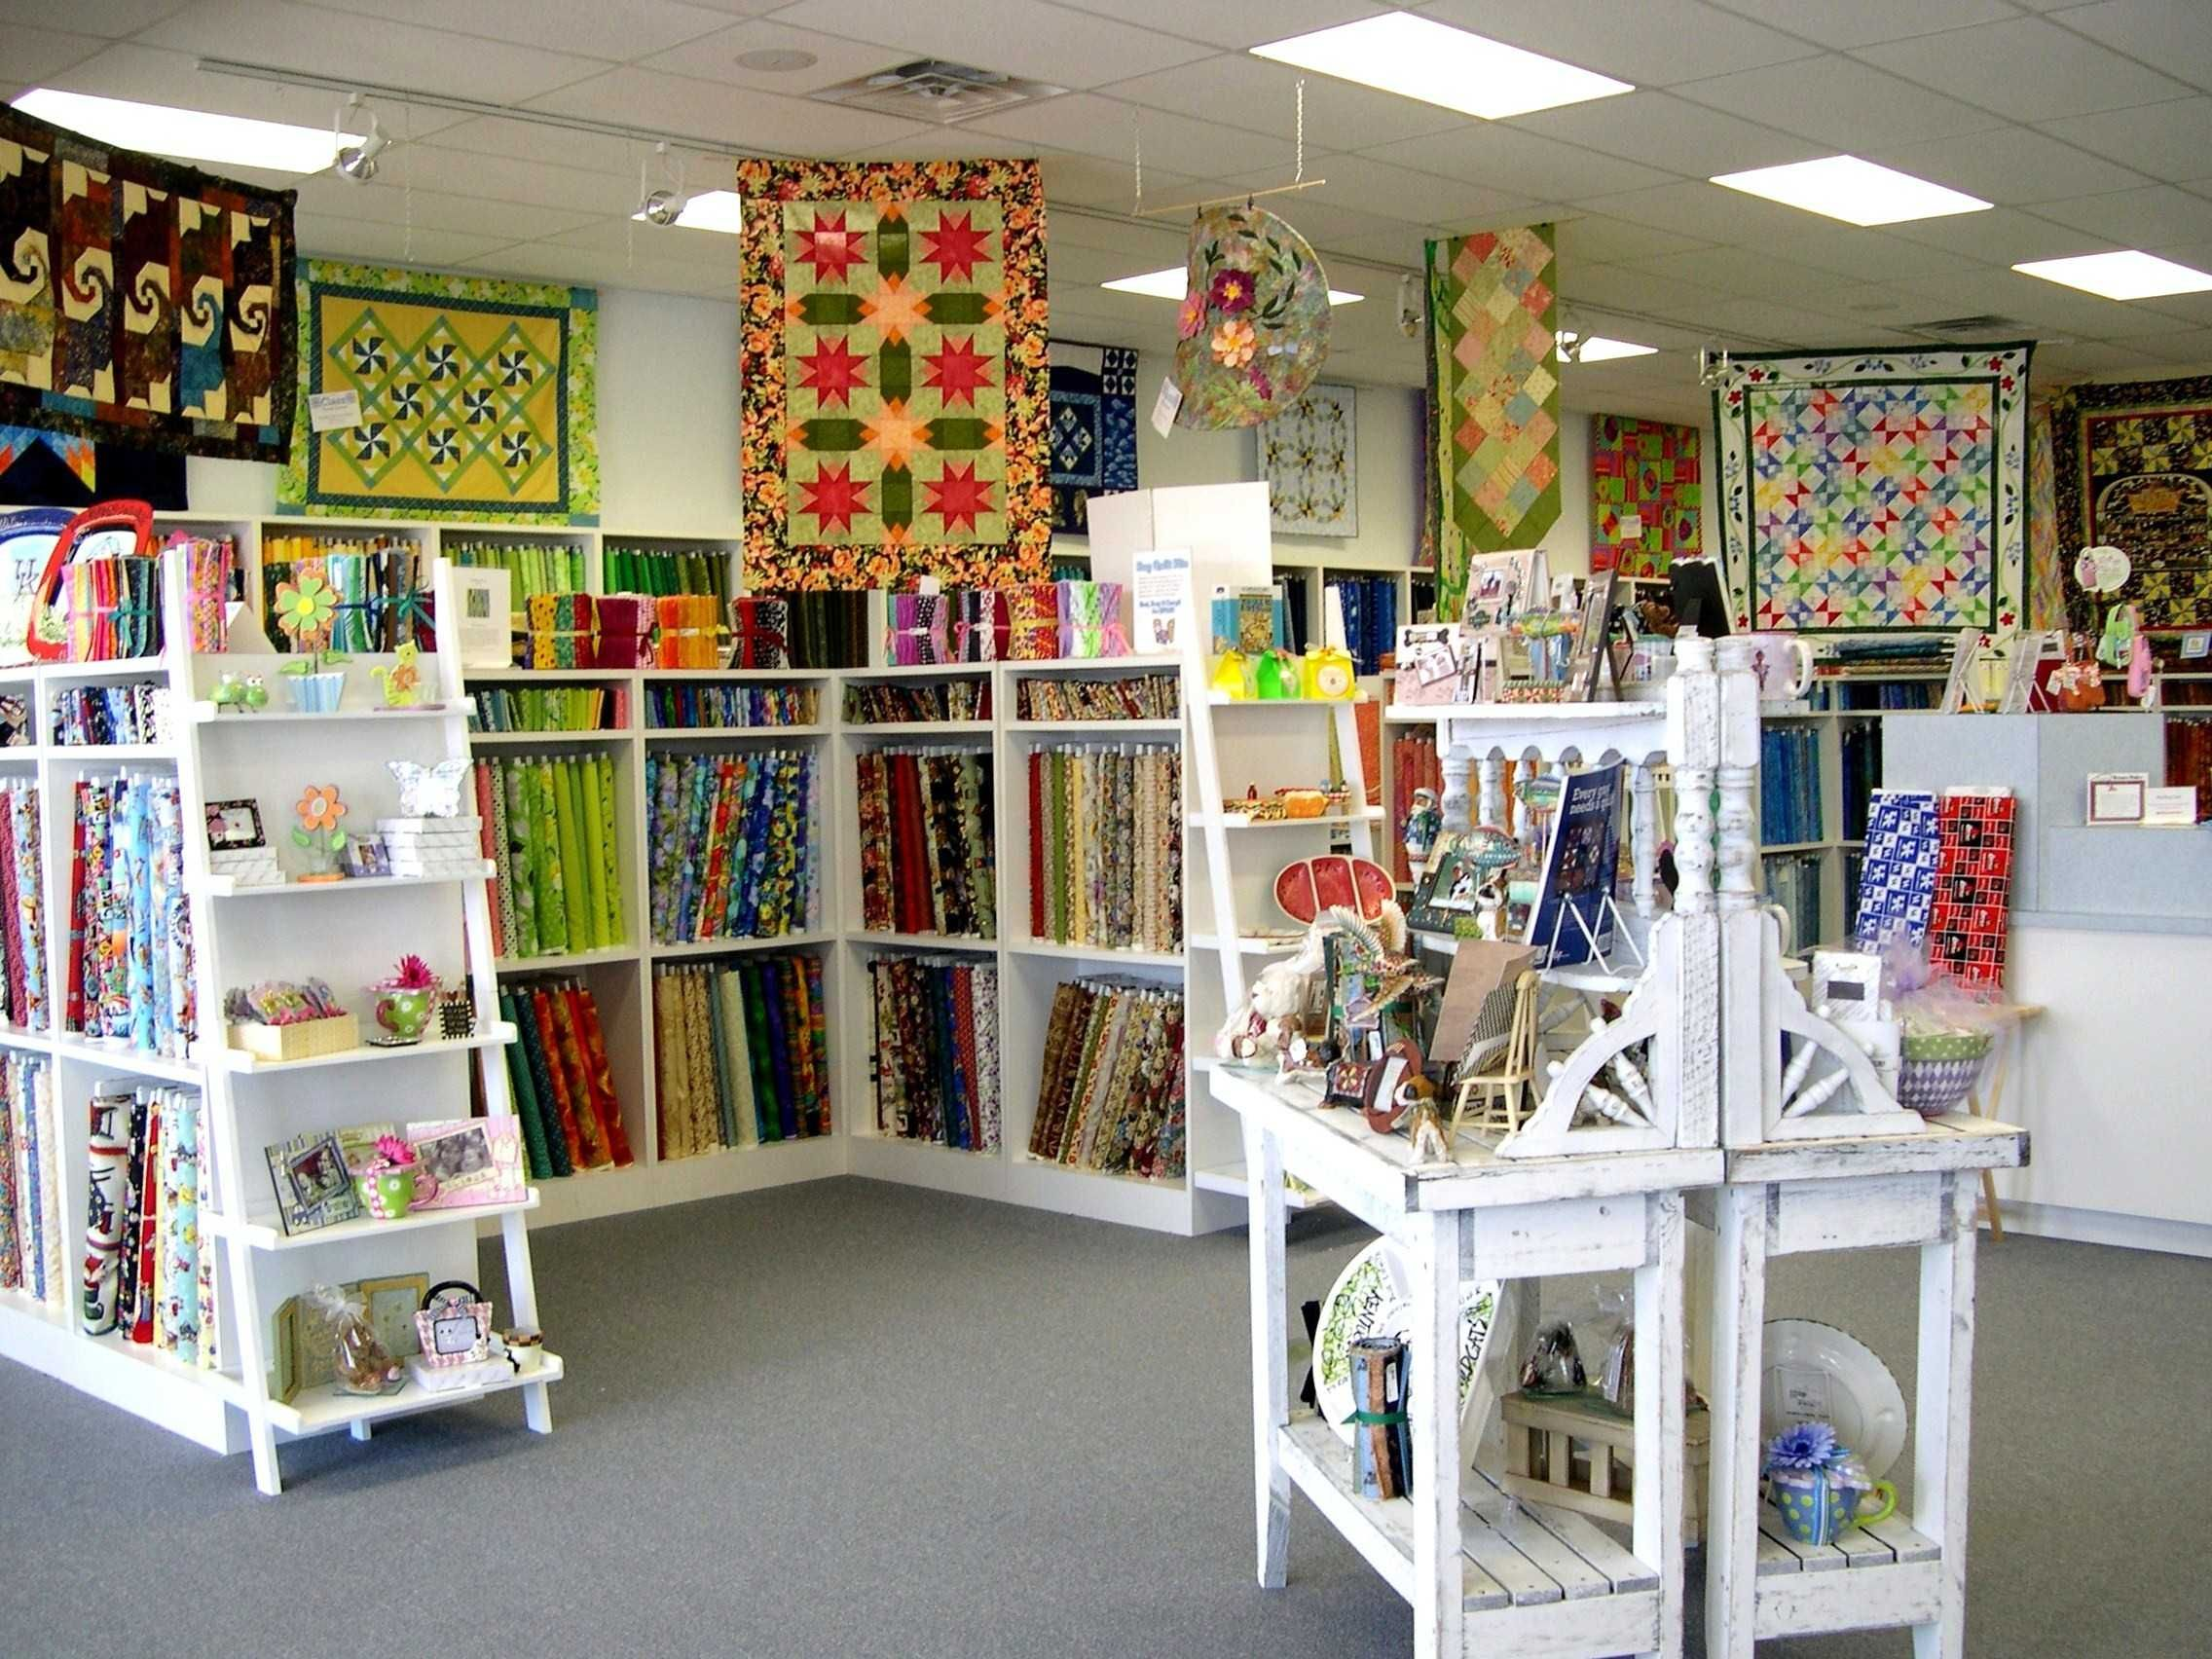 48+ Craft stores close to my location info